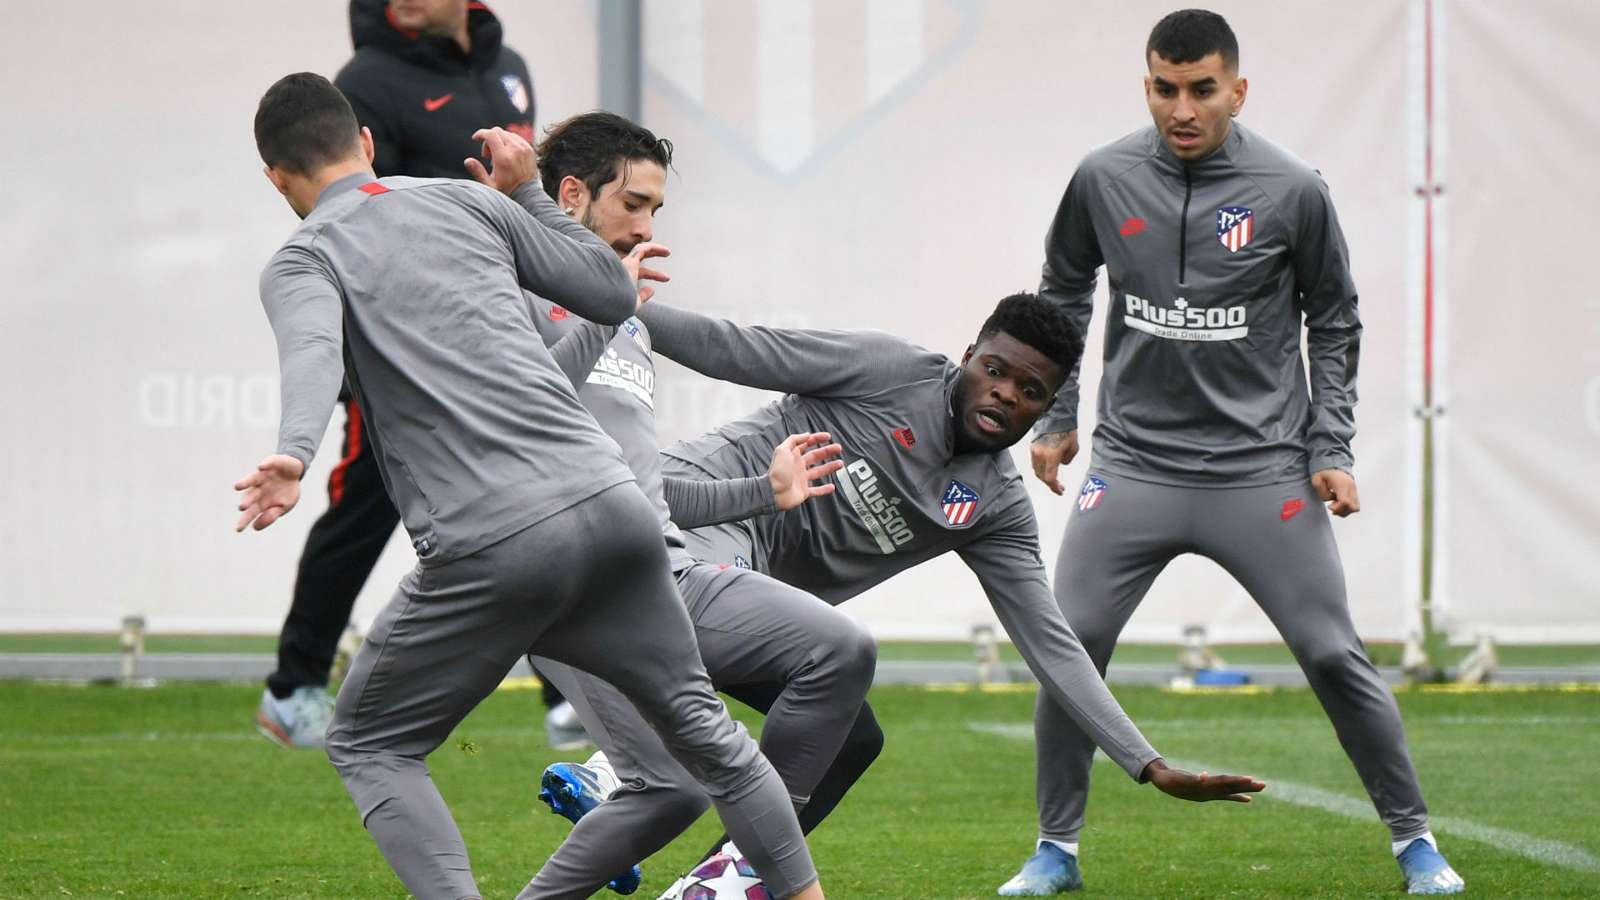 'We are used to difficult situations' - Atletico Madrid's Partey boasts ahead of Liverpool clash - Bóng Đá